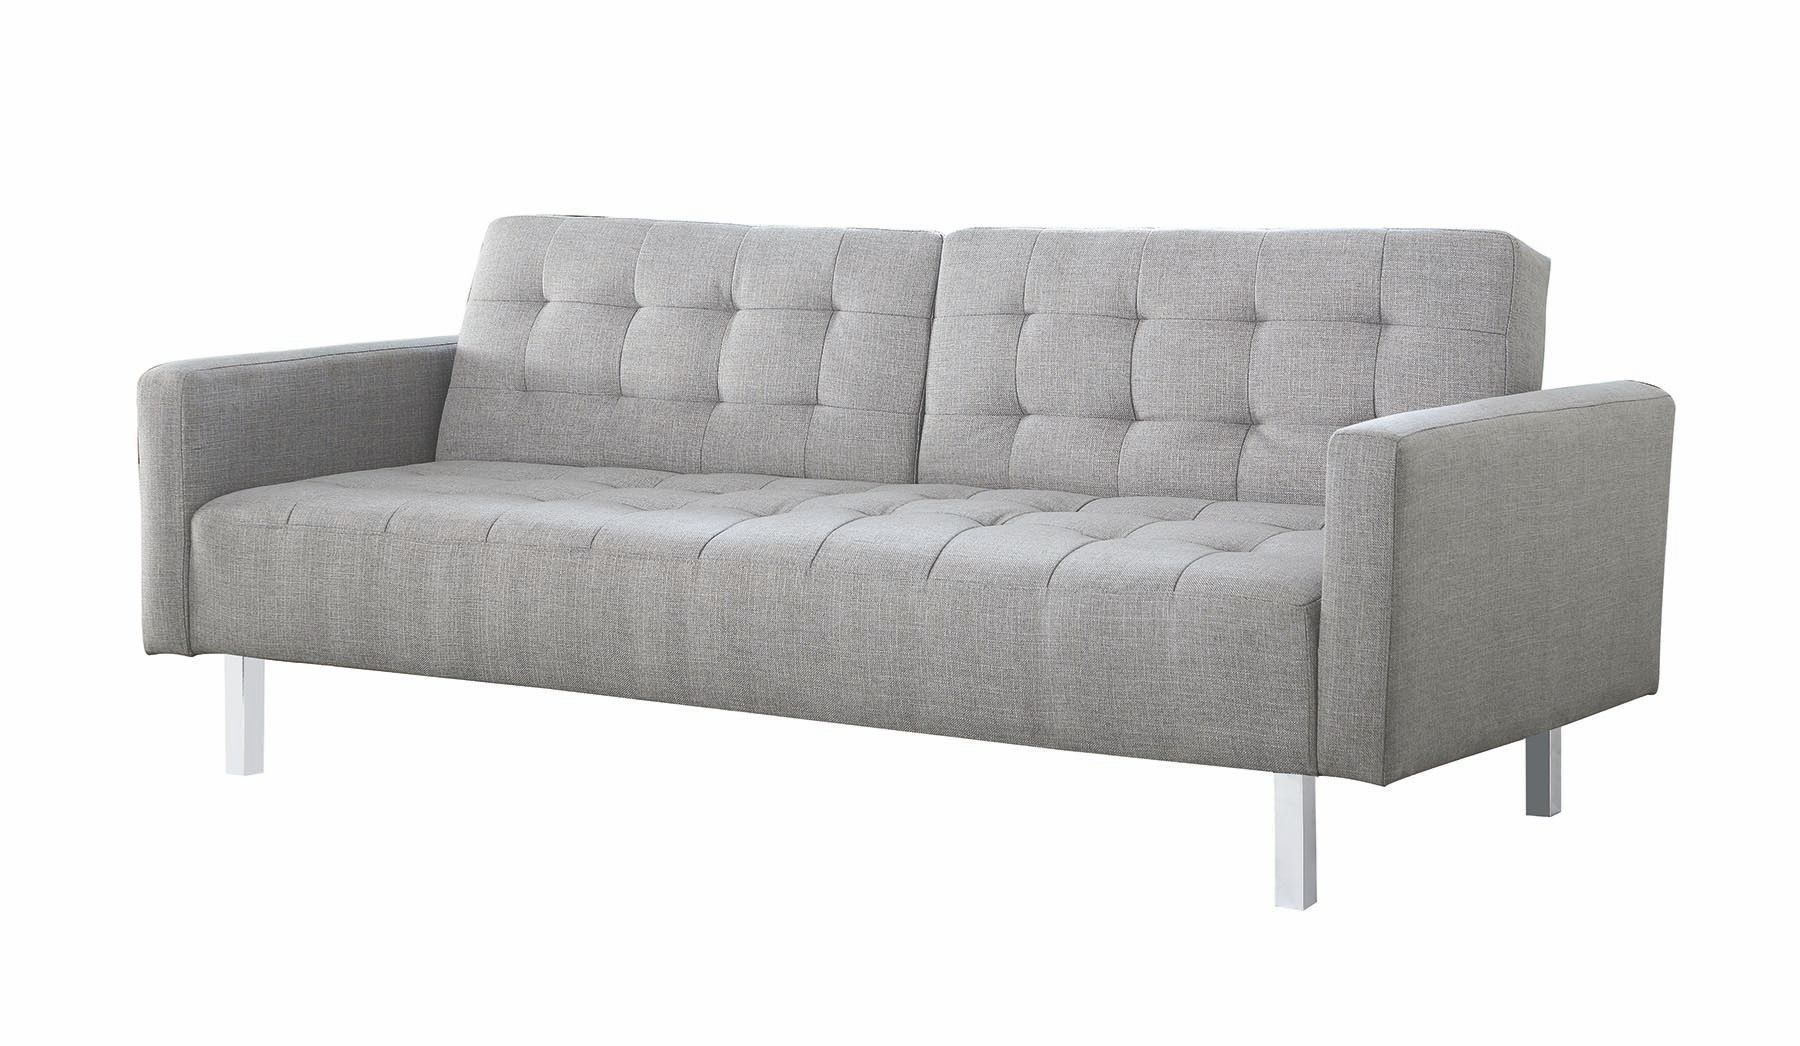 Light Grey Sofa Bed 505616 Coaster Furniture